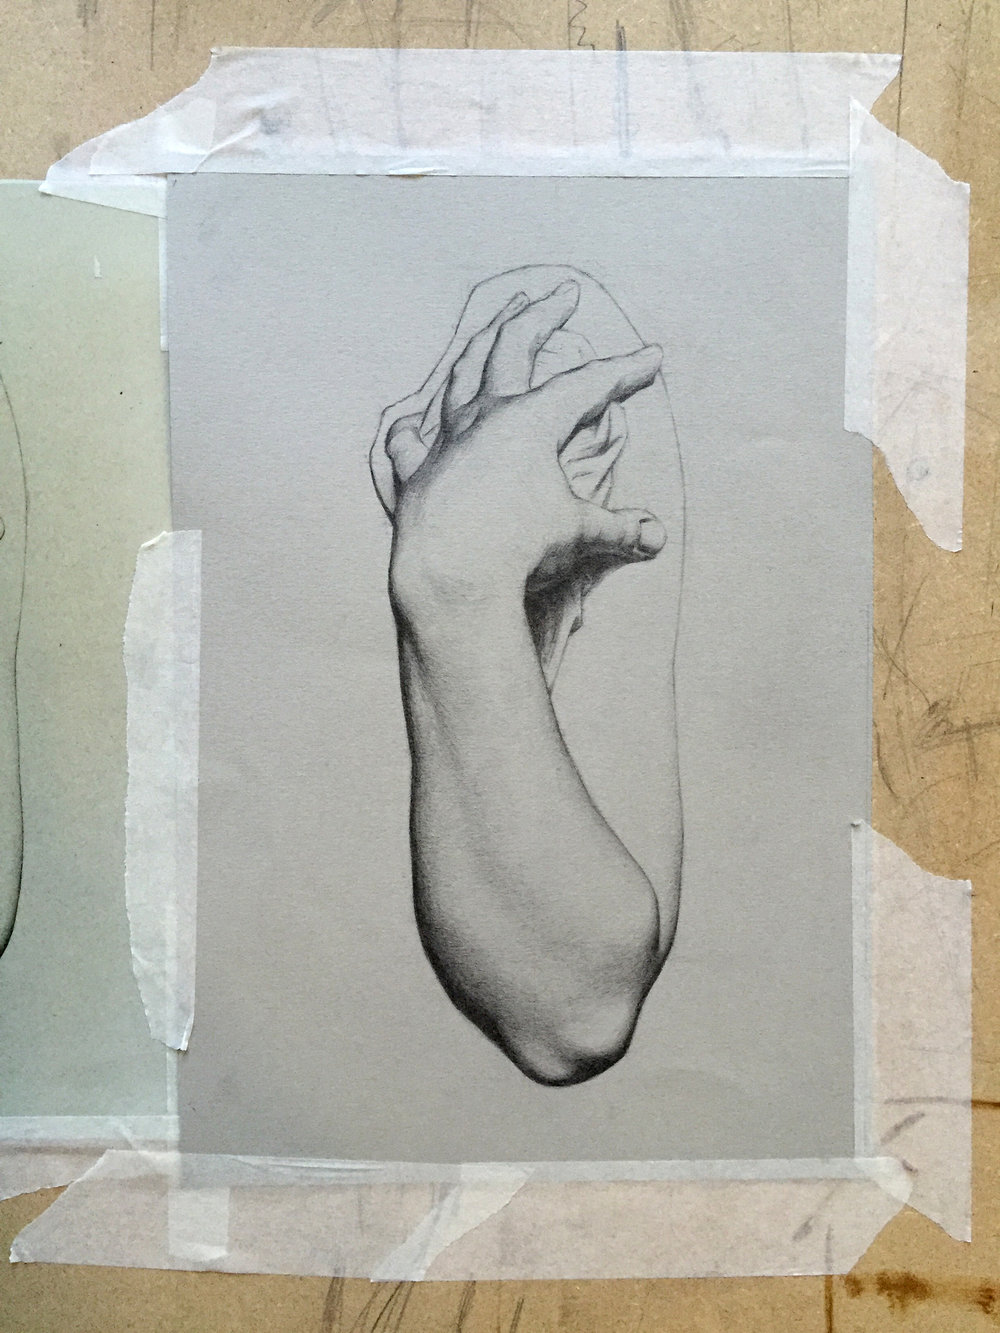 Charles Bargue Hand Study